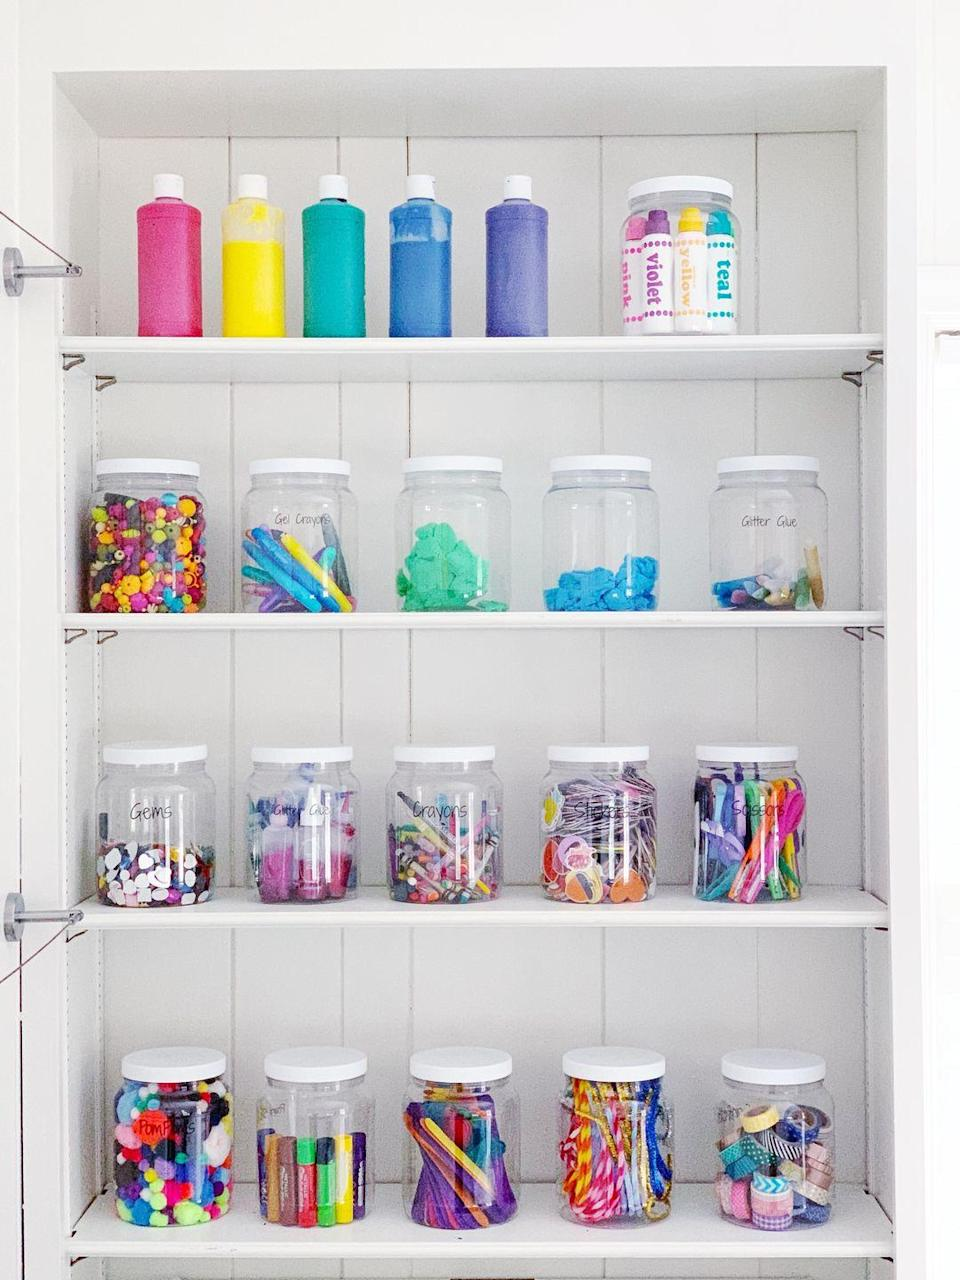 """<p>By storing kids' art supplies in clear jars, you'll always know exactly how many pom-poms, pipe cleaners, and Popsicle sticks you have in stock.</p><p><strong>See more at <a href=""""https://www.styleanddwell.com/craft-room-organization/"""" rel=""""nofollow noopener"""" target=""""_blank"""" data-ylk=""""slk:Style + Dwell"""" class=""""link rapid-noclick-resp"""">Style + Dwell</a>.</strong></p><p><strong><a class=""""link rapid-noclick-resp"""" href=""""https://www.amazon.com/1790-Half-Gallon-Glass-2-Pack/dp/B07NQR7L71?tag=syn-yahoo-20&ascsubtag=%5Bartid%7C10063.g.36014277%5Bsrc%7Cyahoo-us"""" rel=""""nofollow noopener"""" target=""""_blank"""" data-ylk=""""slk:SHOP HALF-GALLON JARS"""">SHOP HALF-GALLON JARS</a><br></strong></p>"""